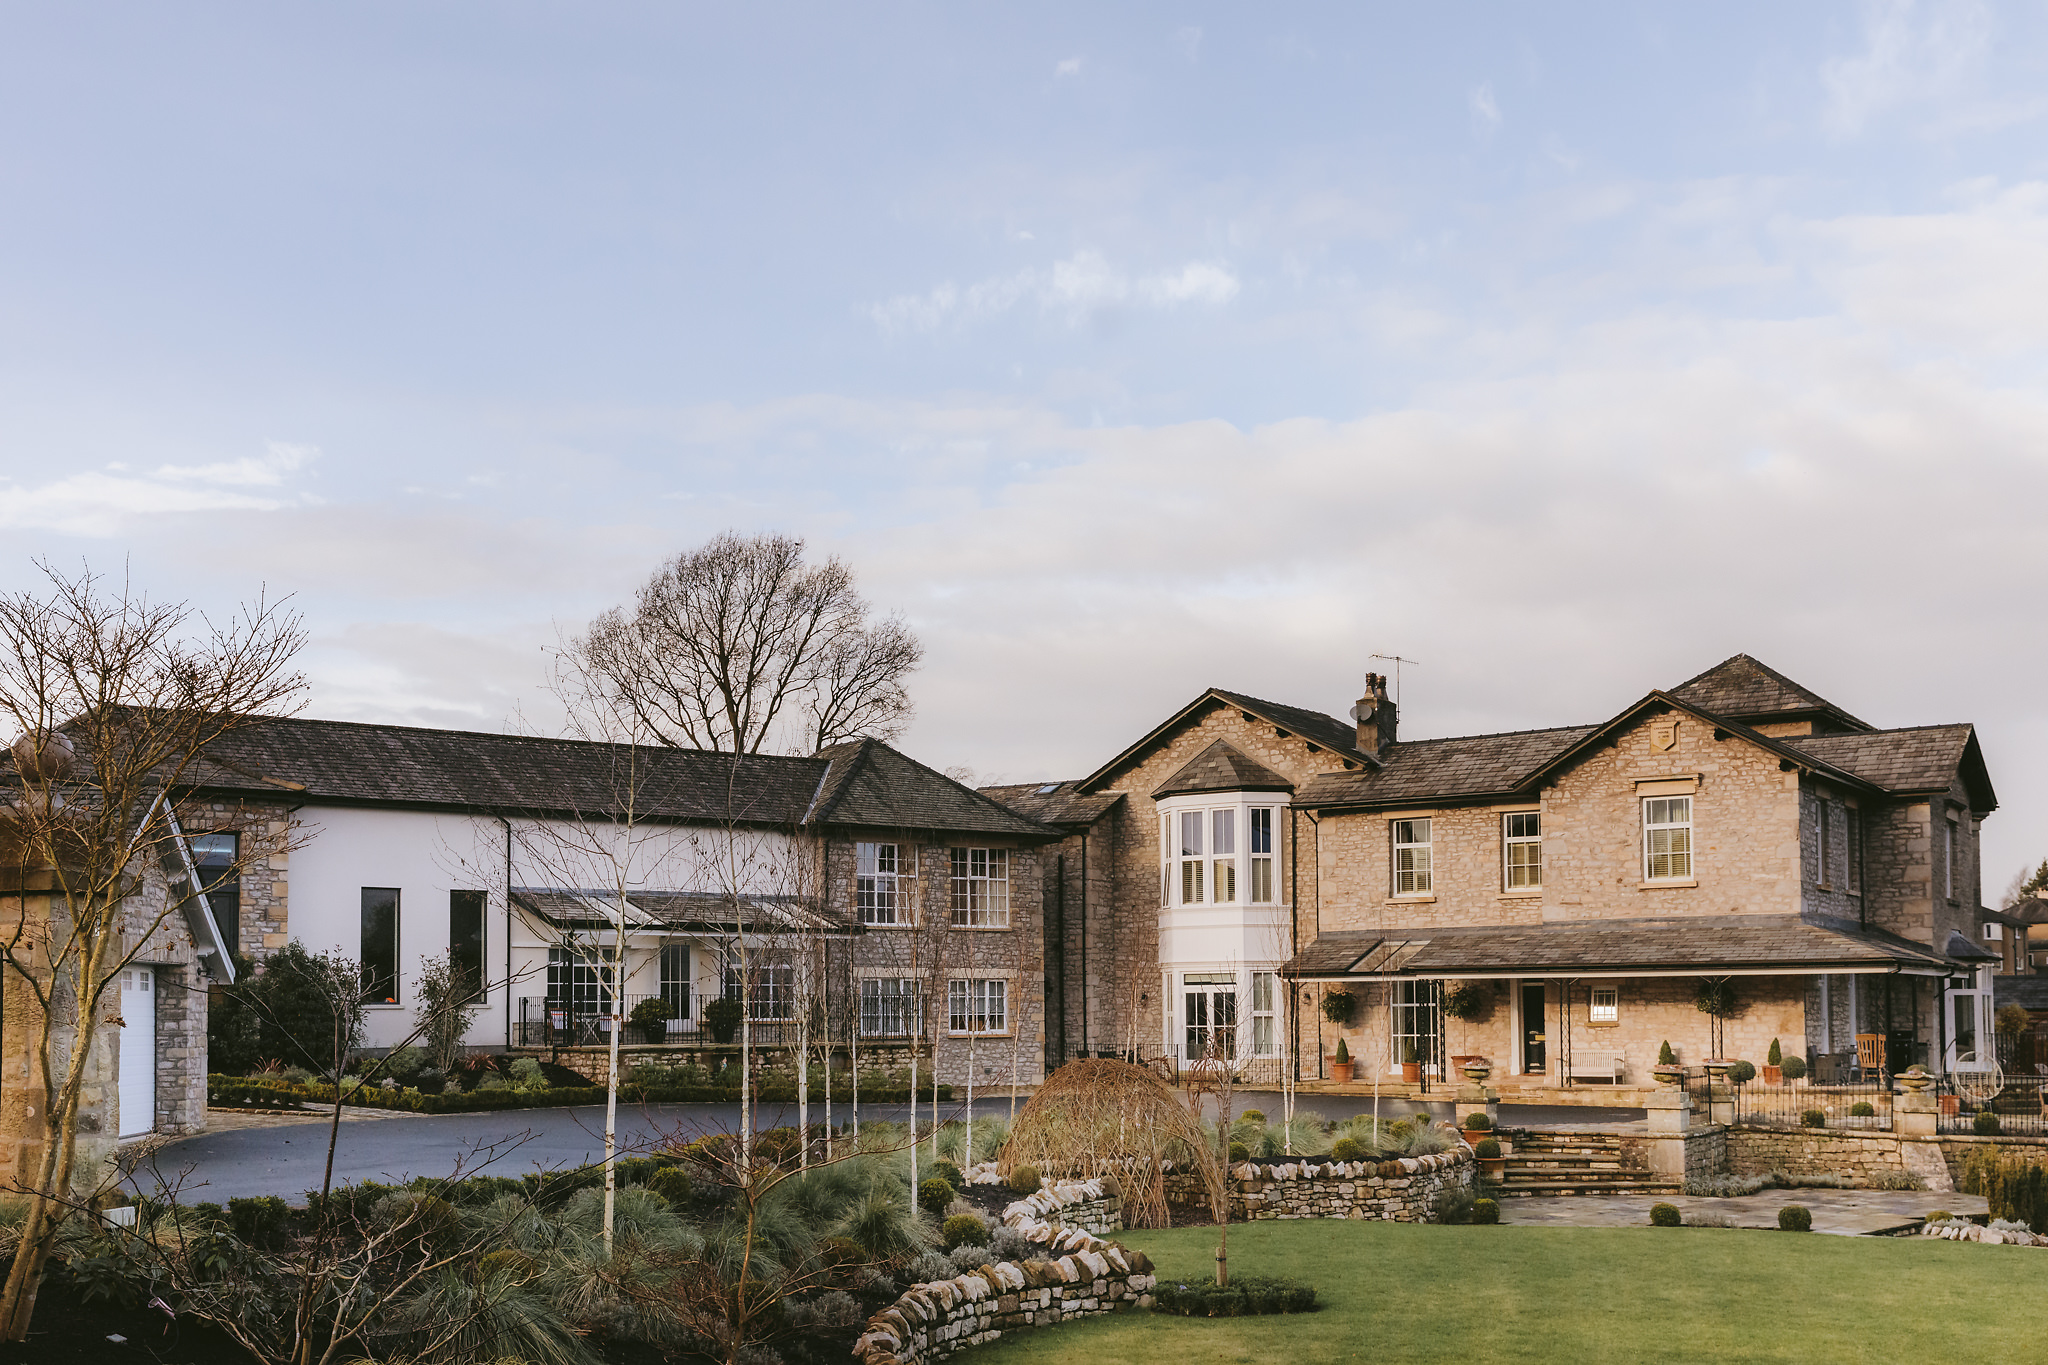 Cressbrook House